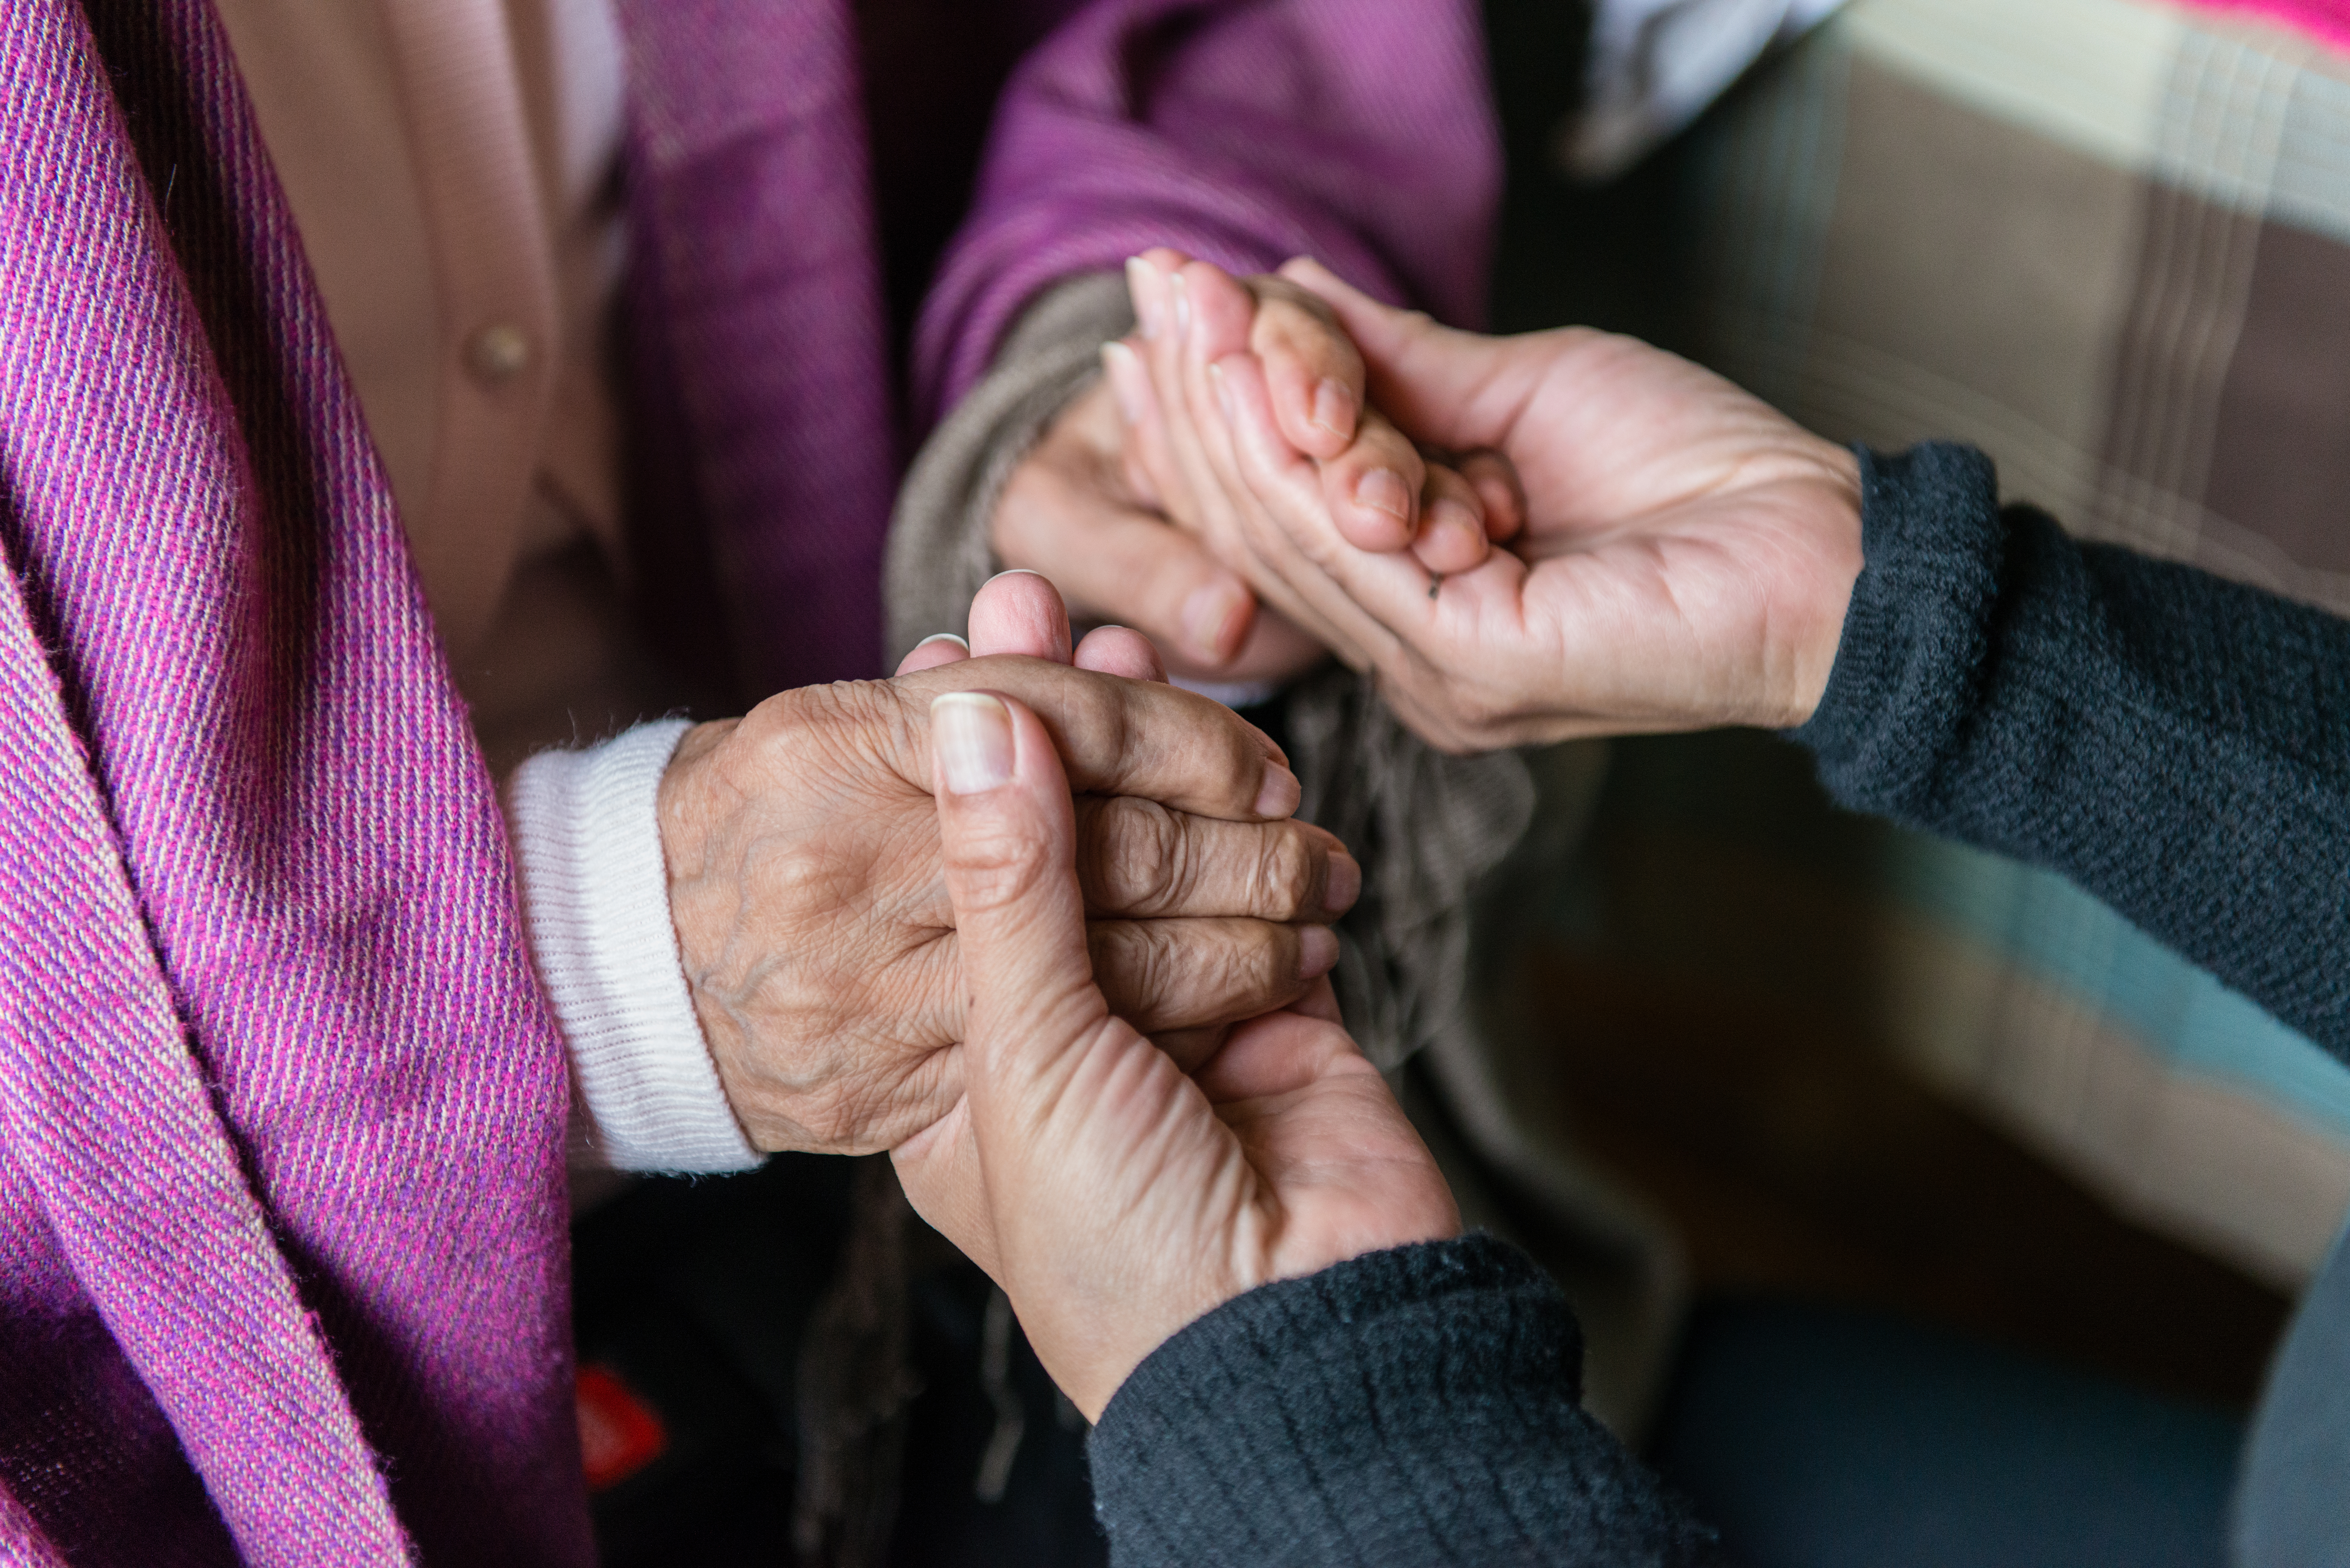 """Tania Yanes holds her mother's hands on Sunday, November 27, 2016. """"I try to make her feel comfortable, feel safe."""" said Yanes. (Heidi de Marco/KHN)"""